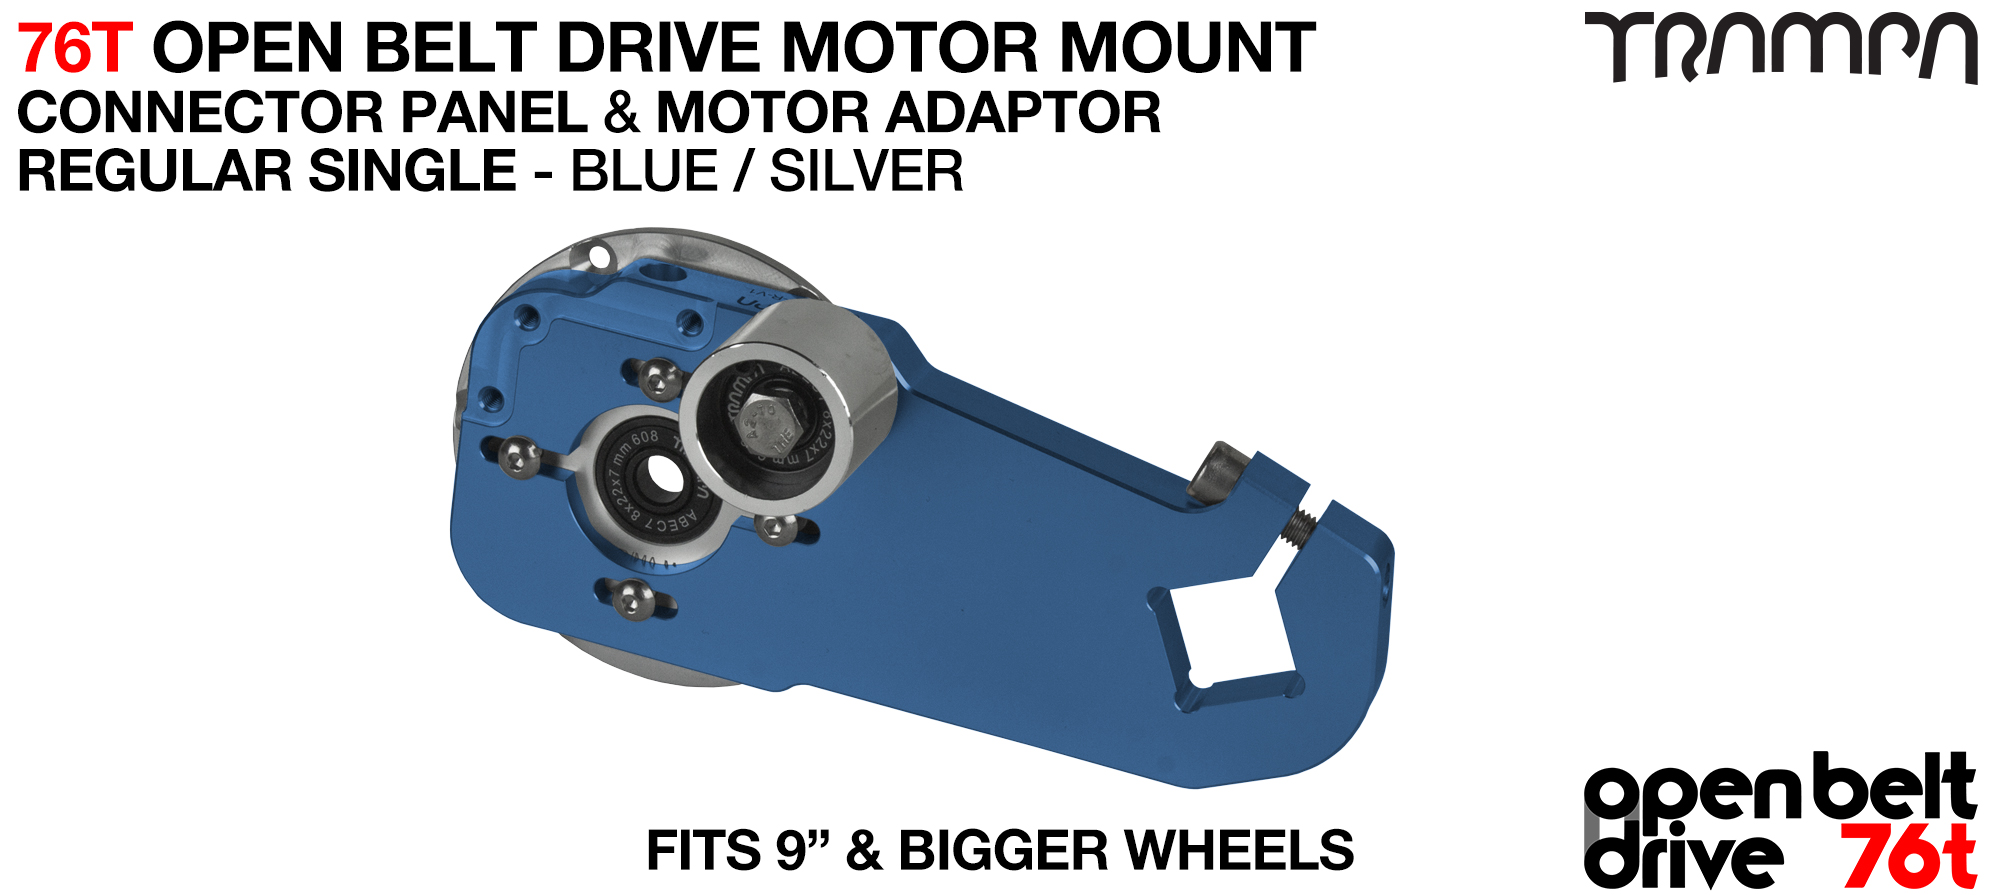 76T Open Belt Drive Motor Mount & Motor Adaptor - SINGLE BLUE